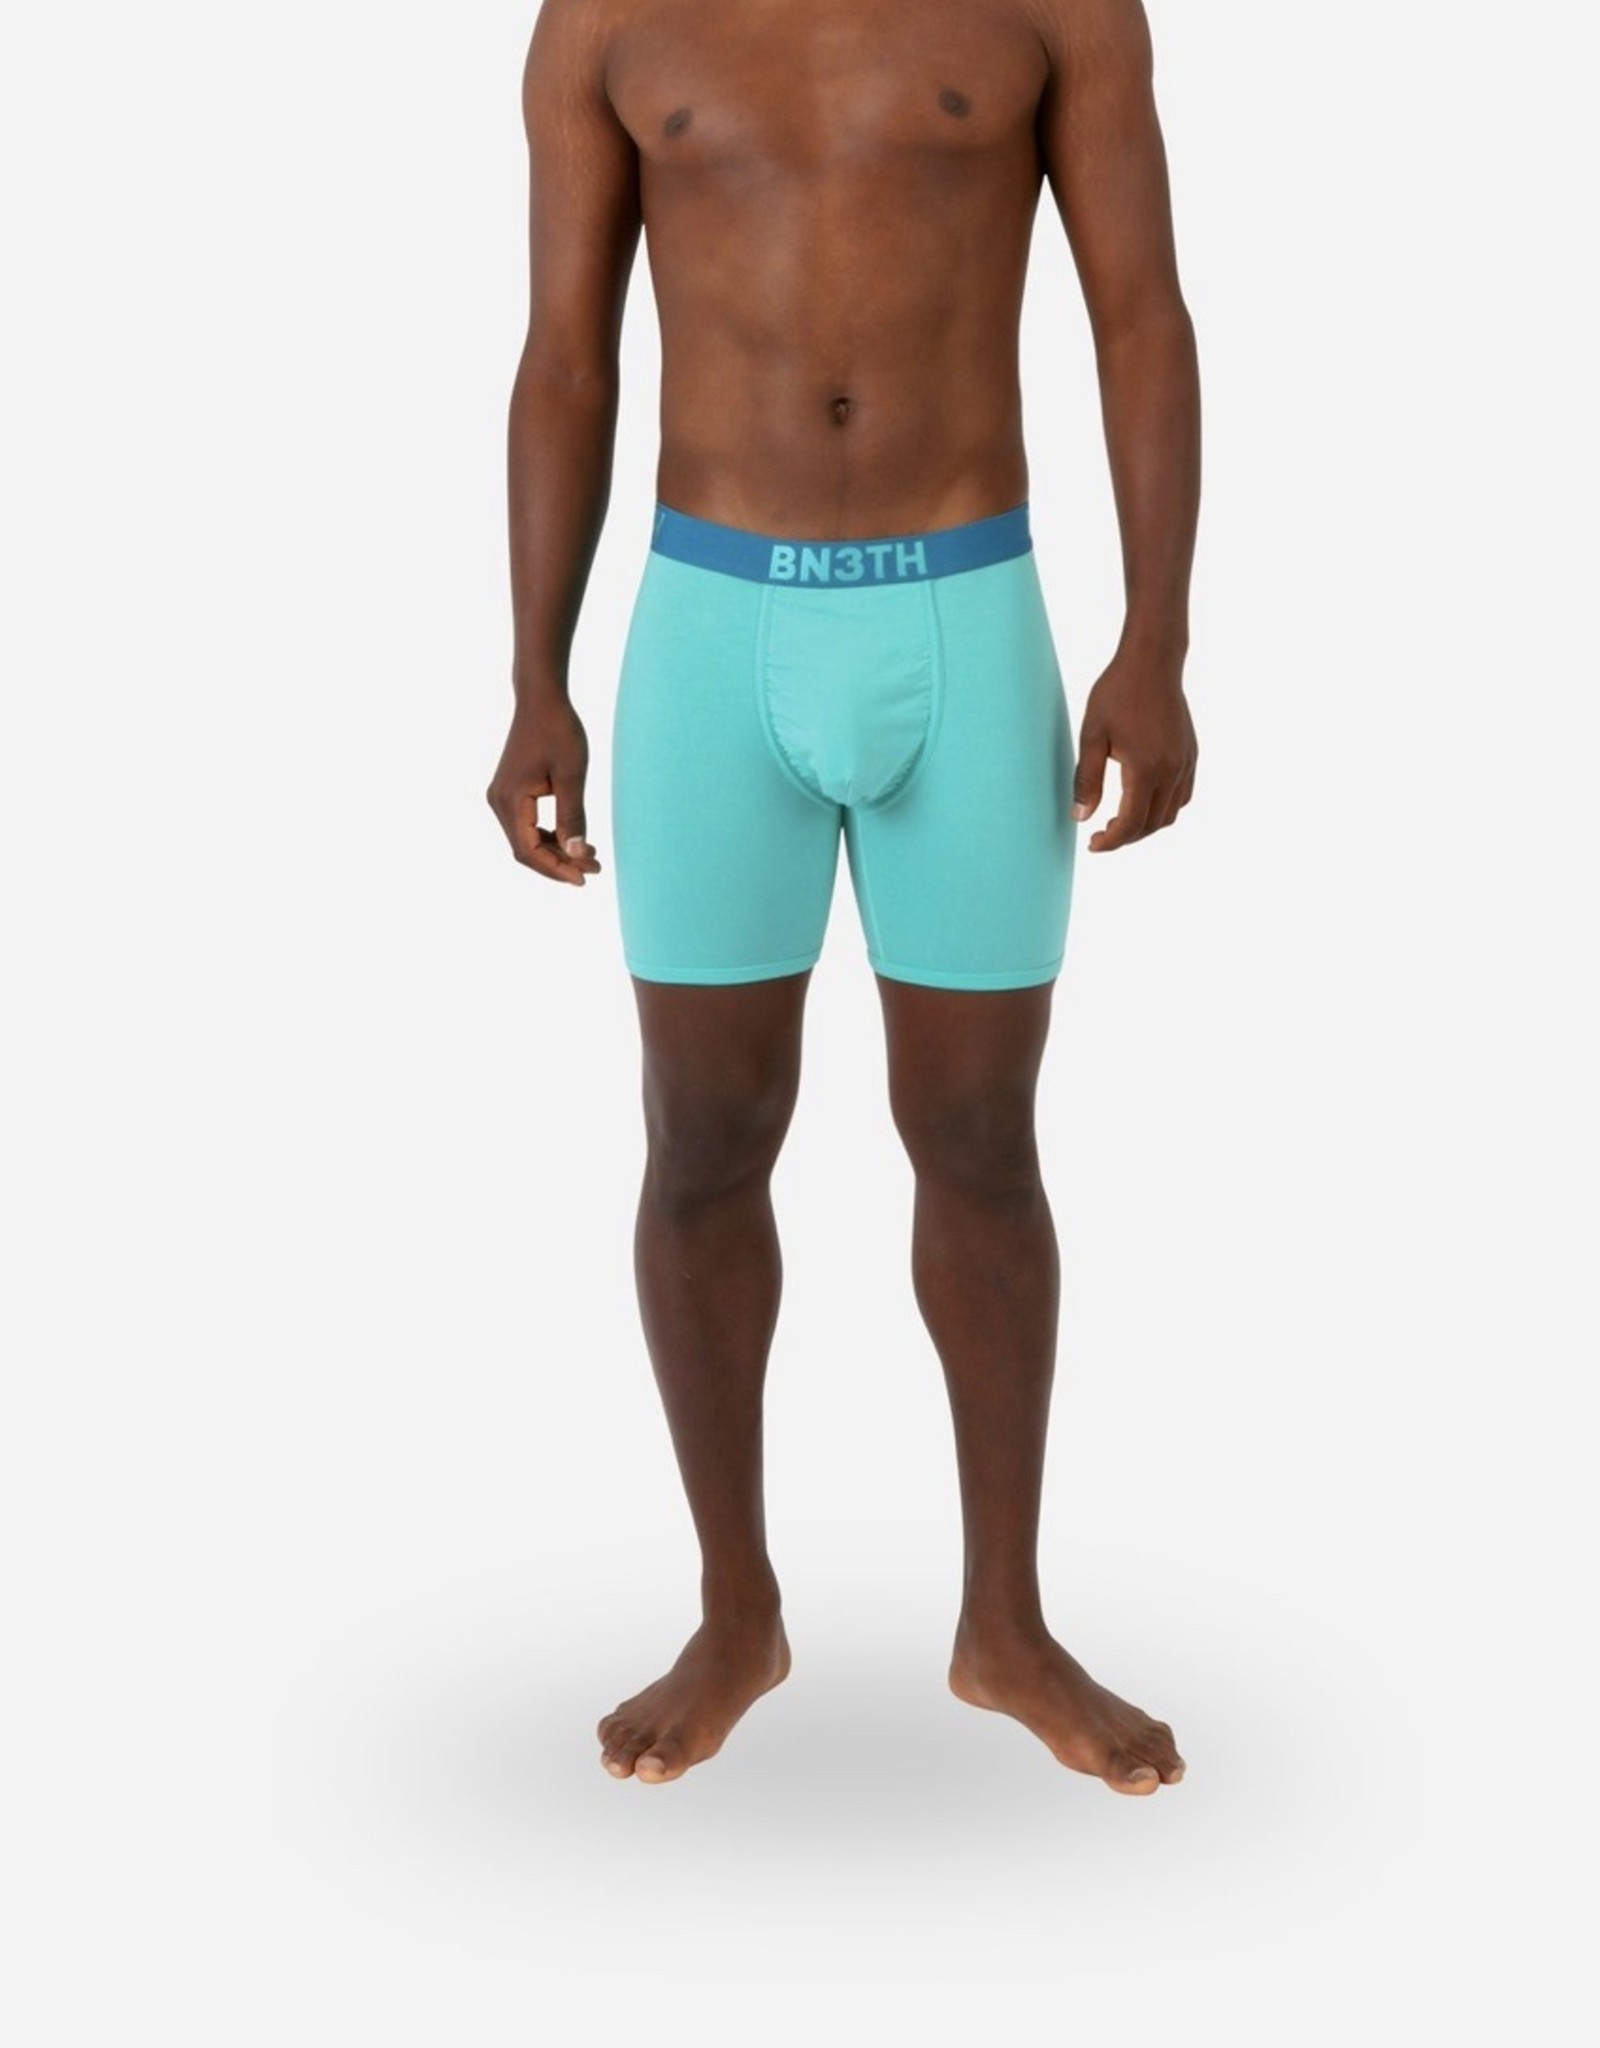 BN3TH CLASSIC BOXER BRIEF 6.5""